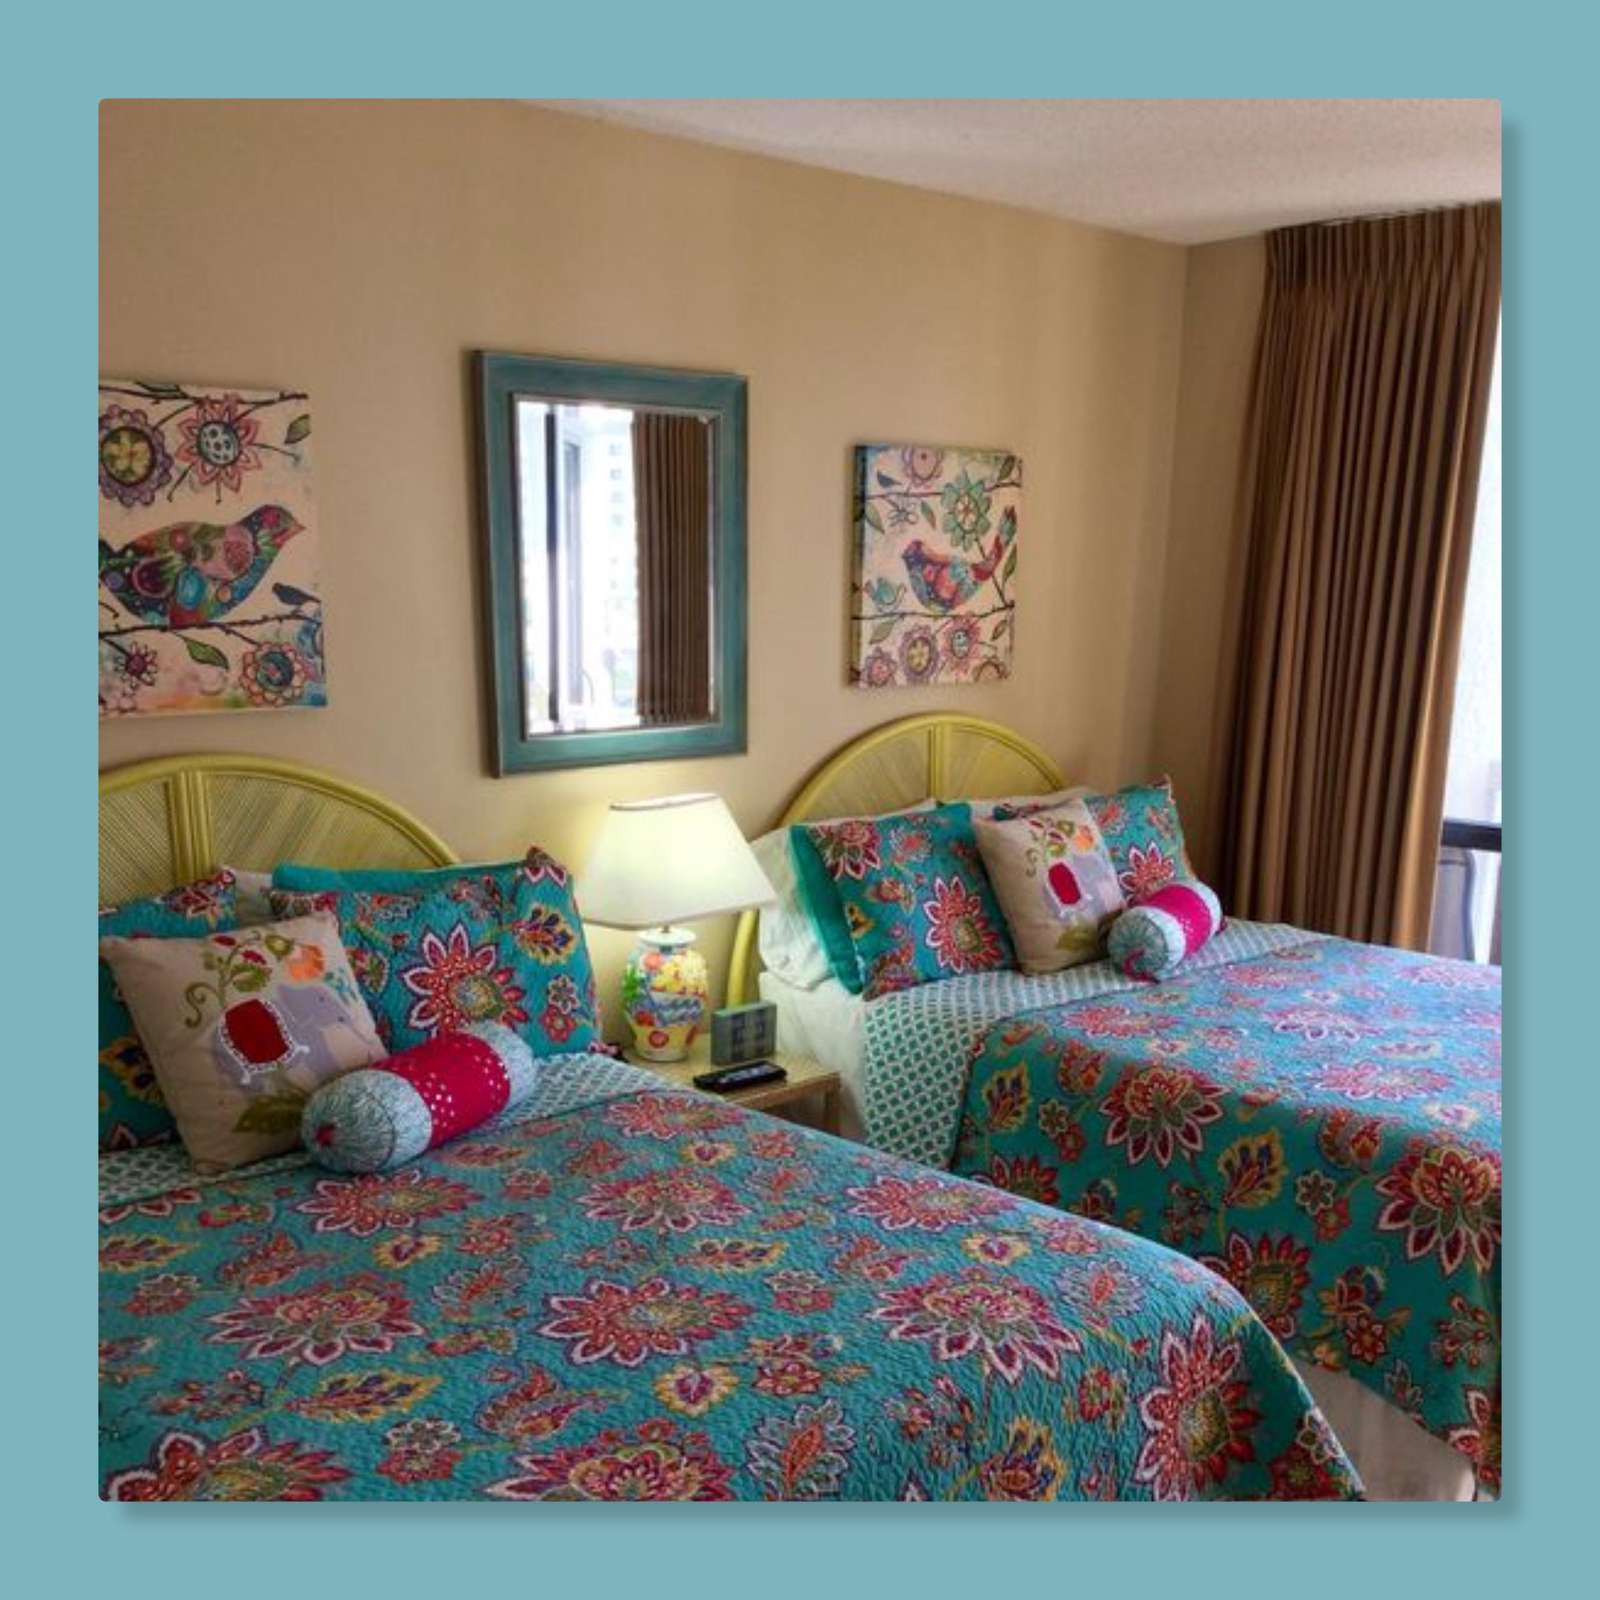 2nd bedroom features 2 queen sized beds and balcony access